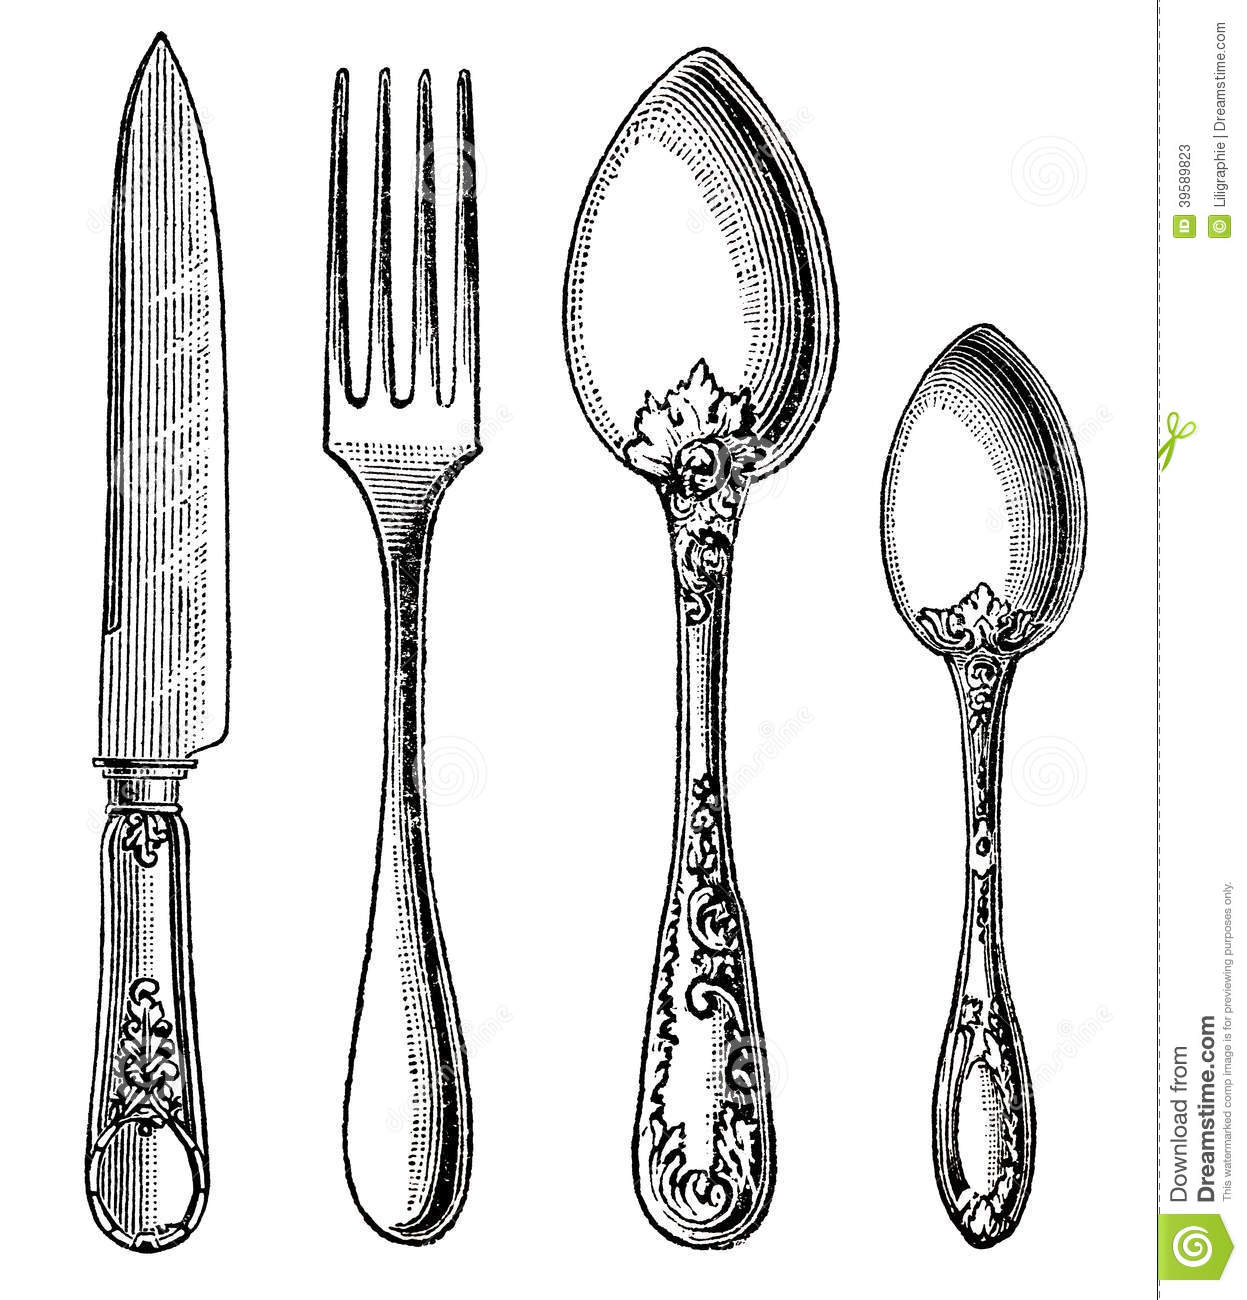 Cutlery clipart vintage Inspiration vintage BM spoon (1247×1300)